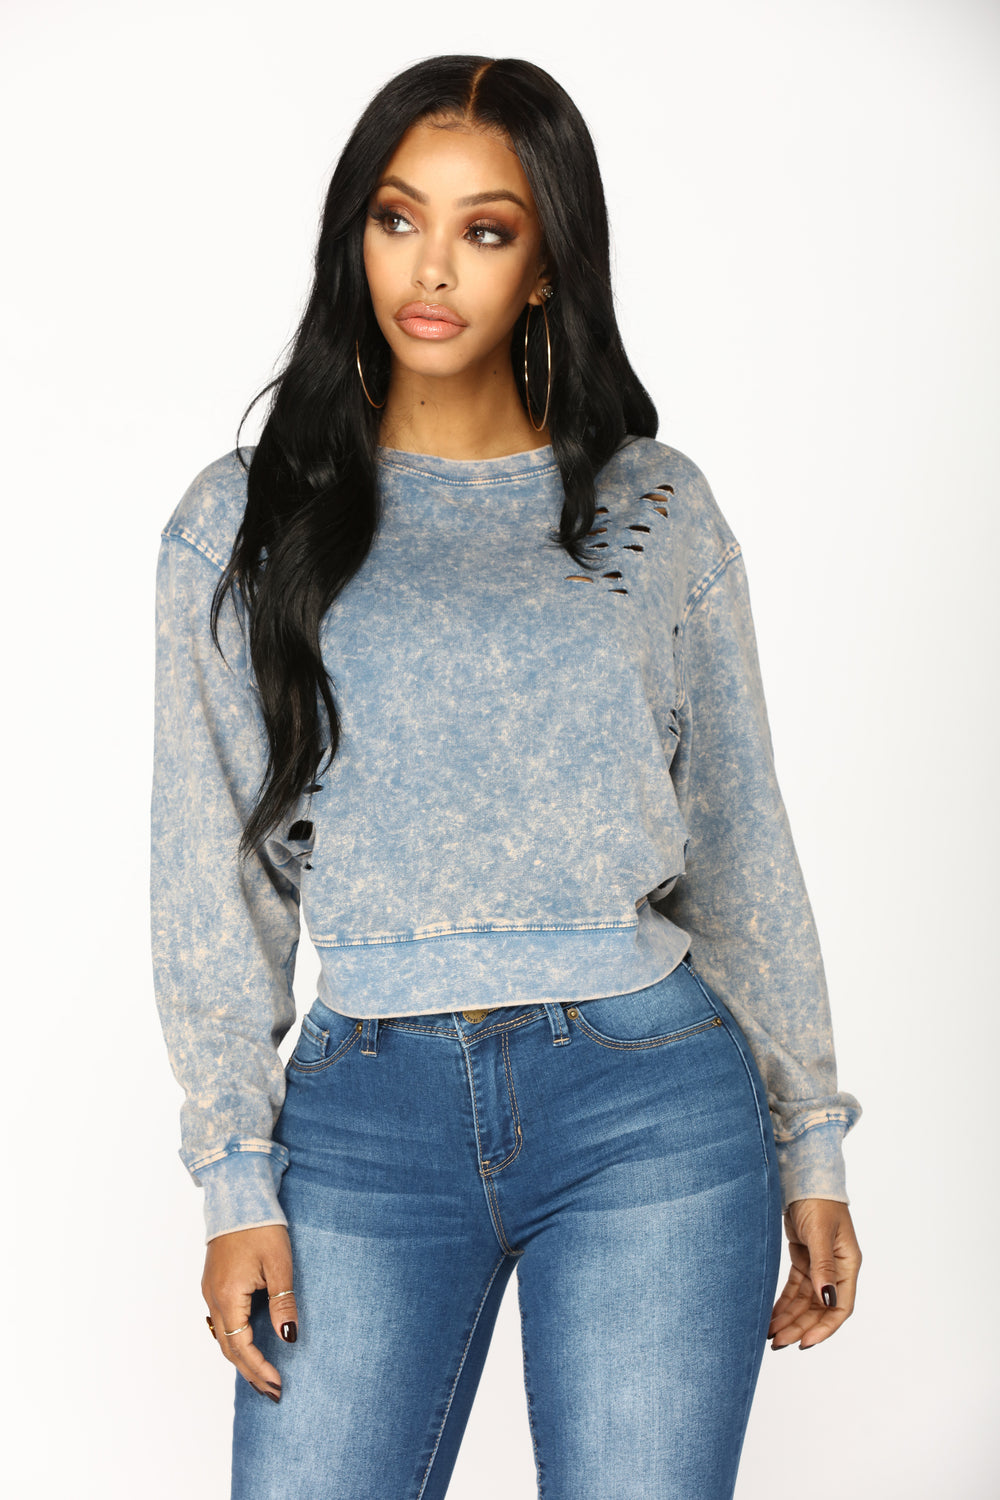 Florina Acid Wash Sweatshirt - Blue